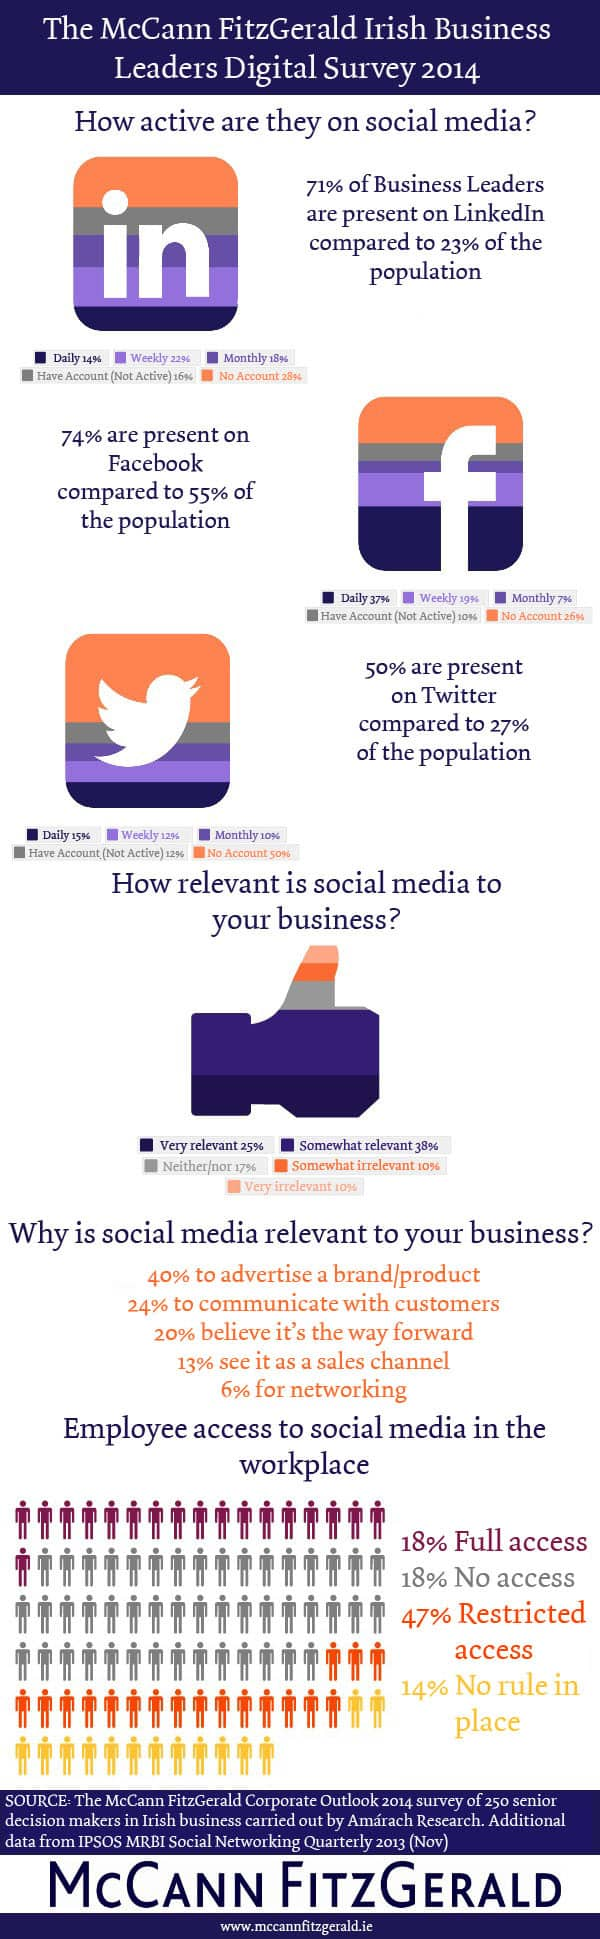 Irish business leaders report on their views and use of social media